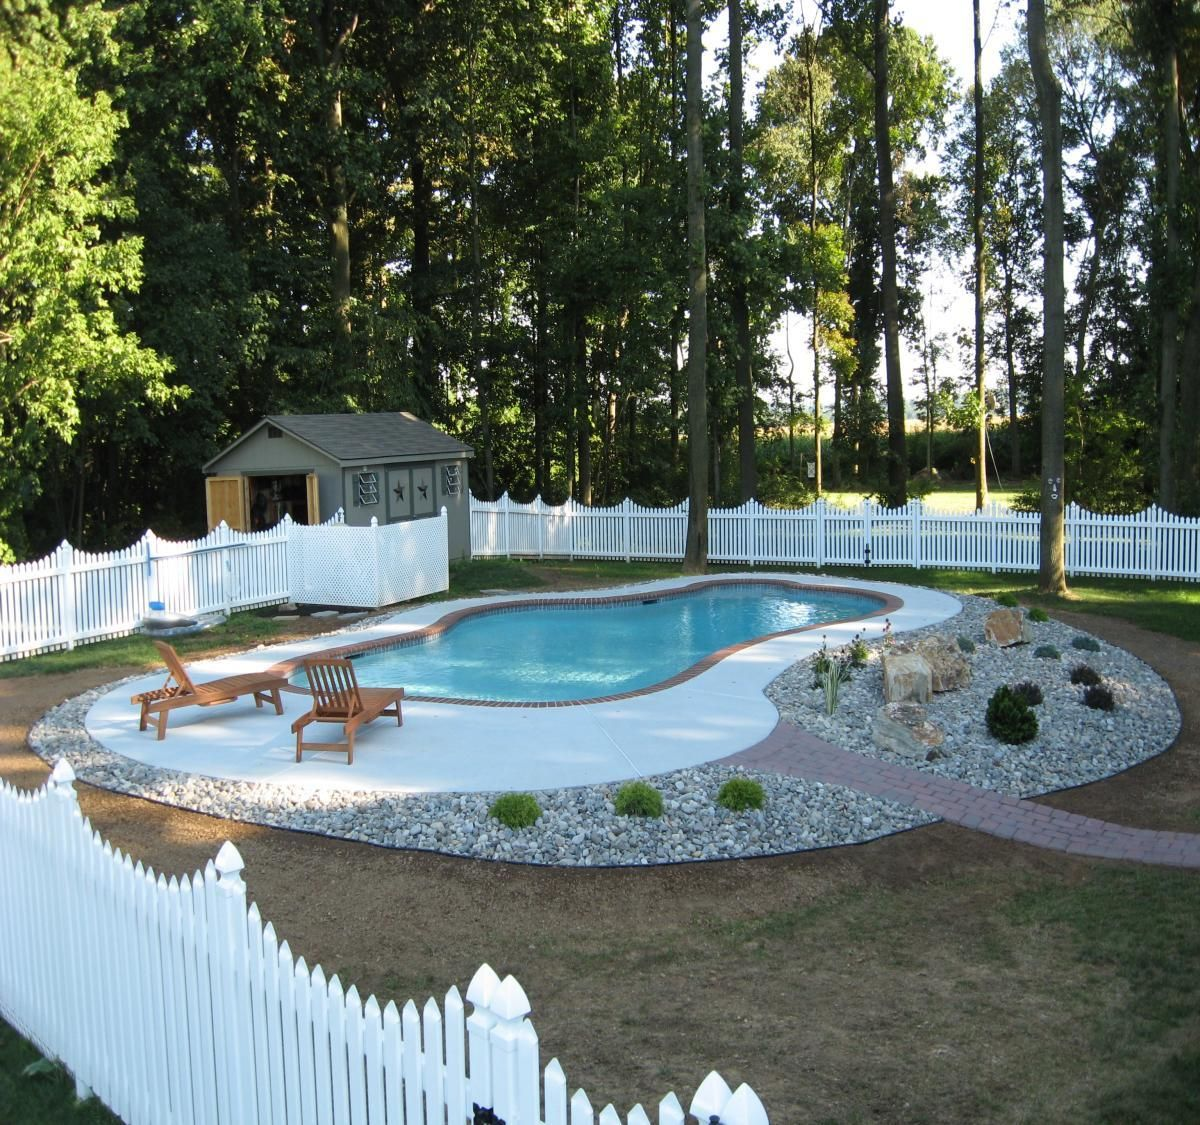 Low maintenance decorative pool design landscaping for Simple inground pool designs